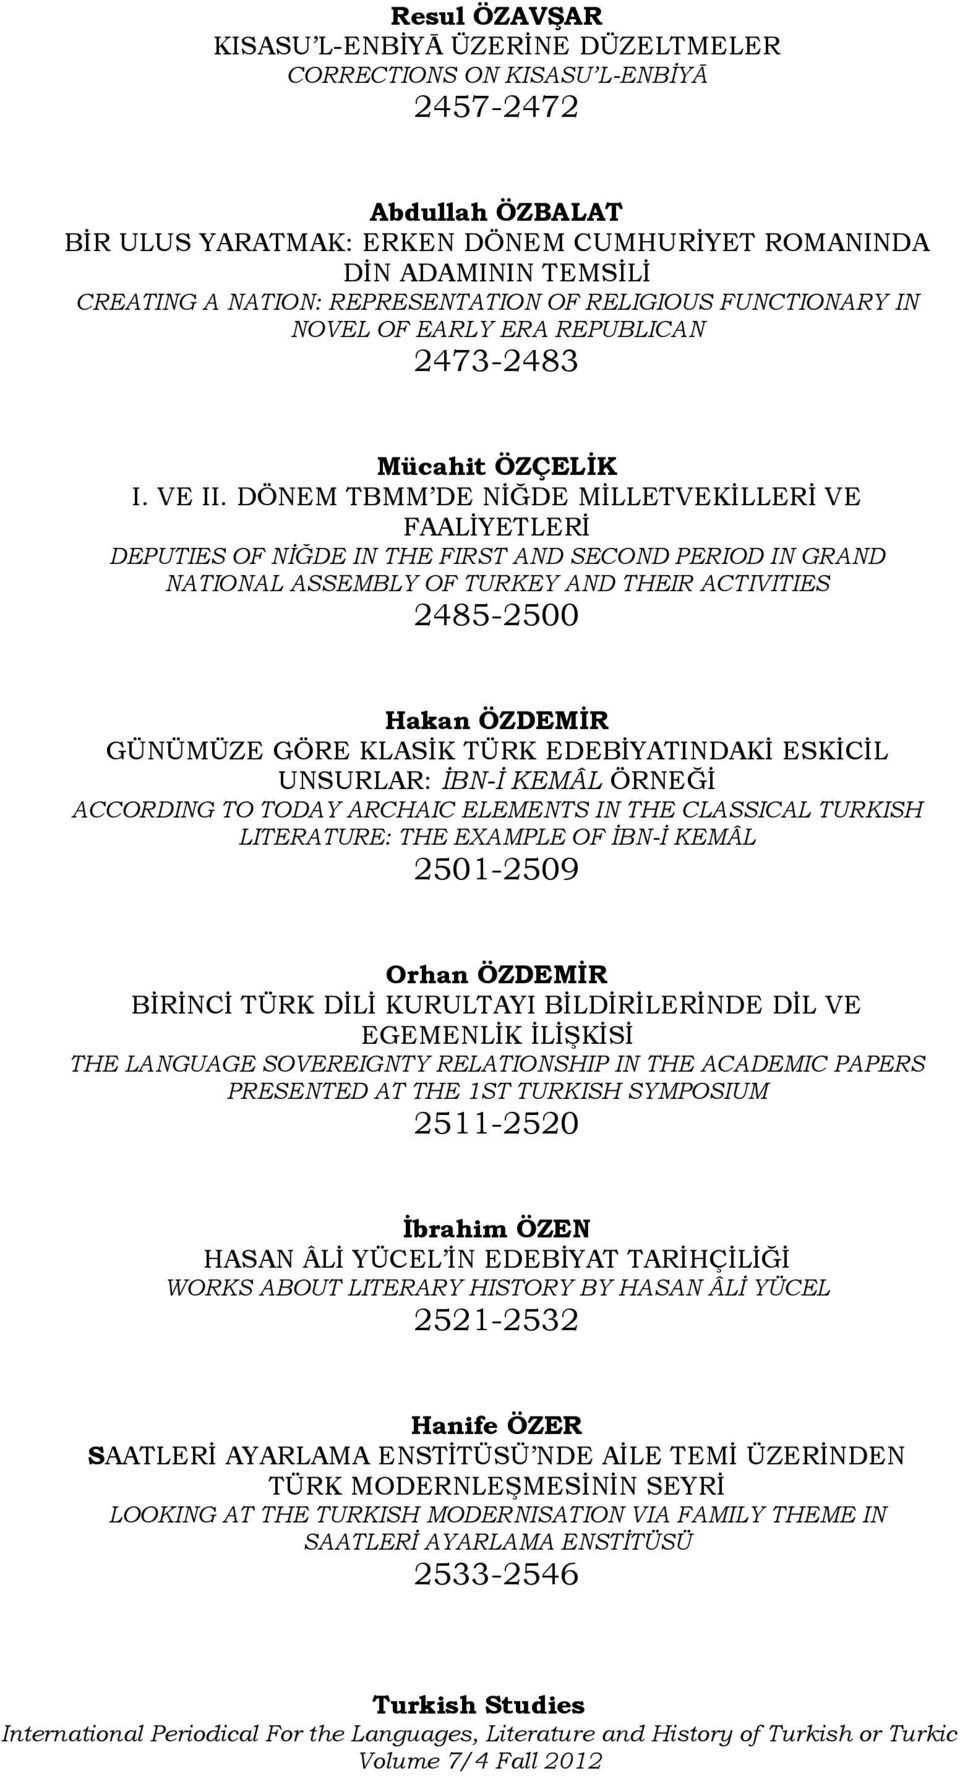 DÖNEM TBMM DE NİĞDE MİLLETVEKİLLERİ VE FAALİYETLERİ DEPUTIES OF NİĞDE IN THE FIRST AND SECOND PERIOD IN GRAND NATIONAL ASSEMBLY OF TURKEY AND THEIR ACTIVITIES 2485-2500 Hakan ÖZDEMĠR GÜNÜMÜZE GÖRE